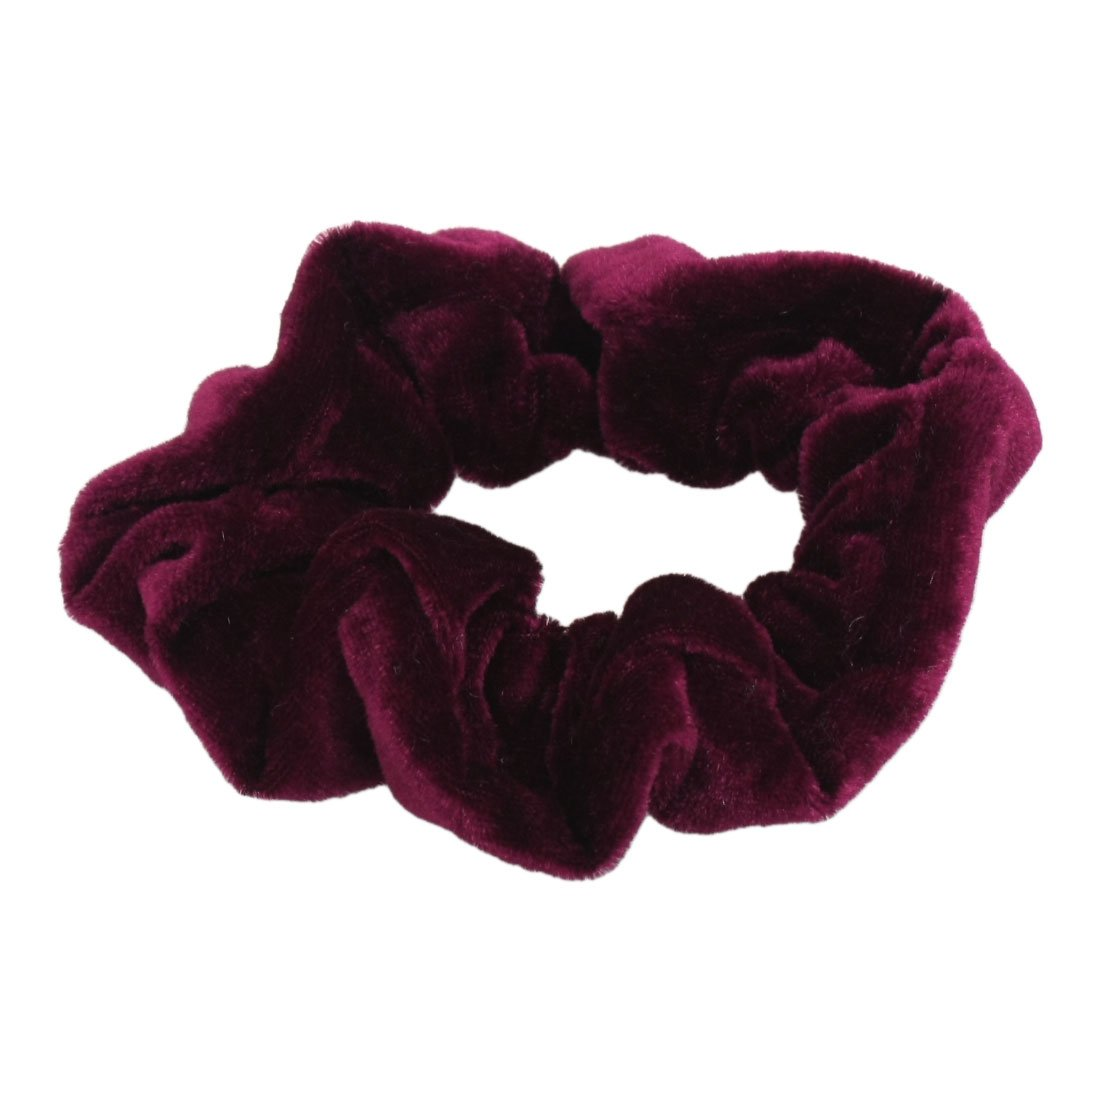 Burgundy Velvet Elastic Hair Tie Band Ponytail Holder for Women